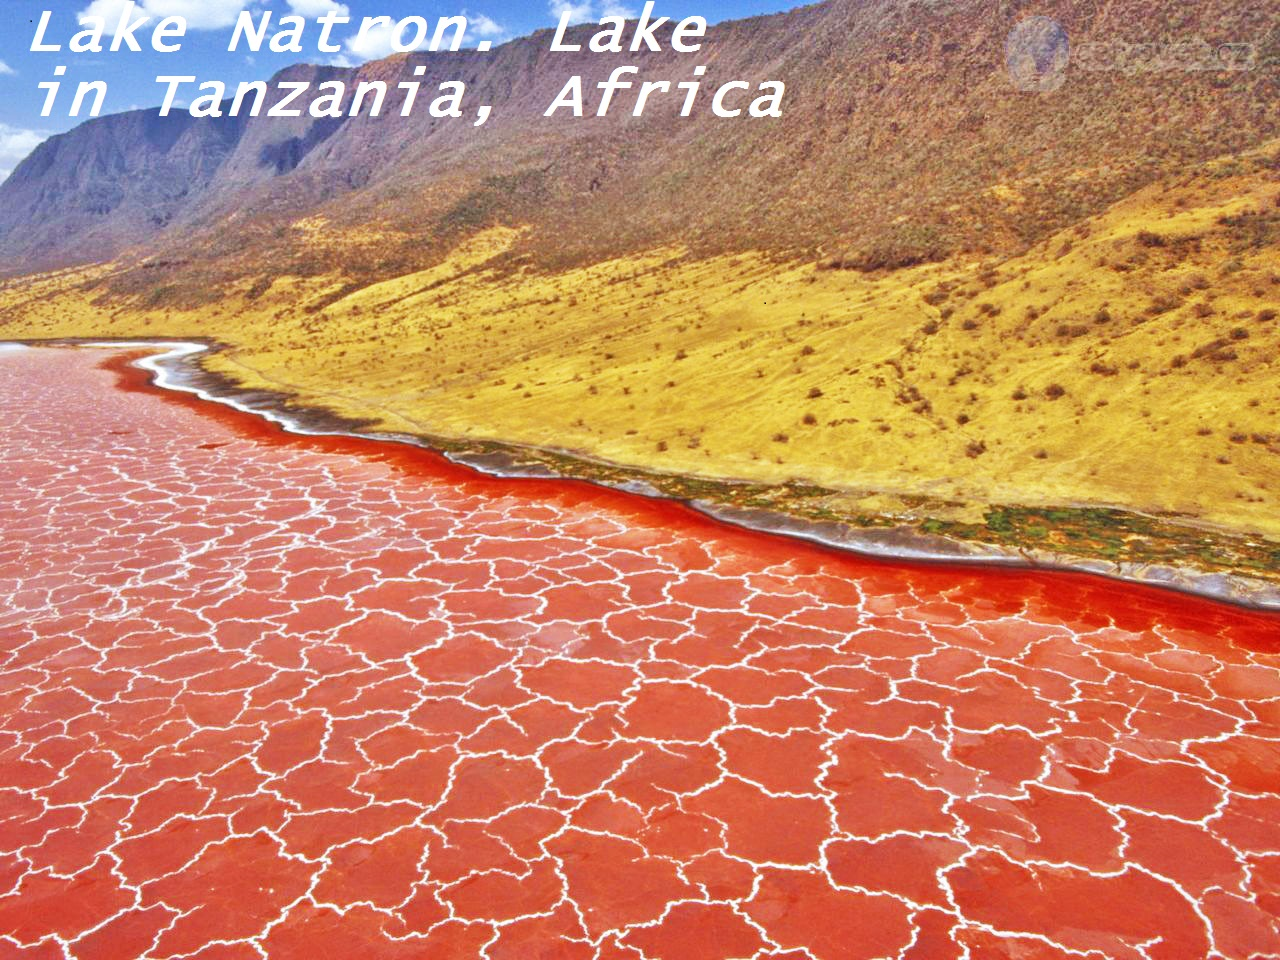 Travel: 10 amazing pics of Lake Natron, the Mummifying Blood Waters of Tanzania  (Lake That Turns Animals to Stone)